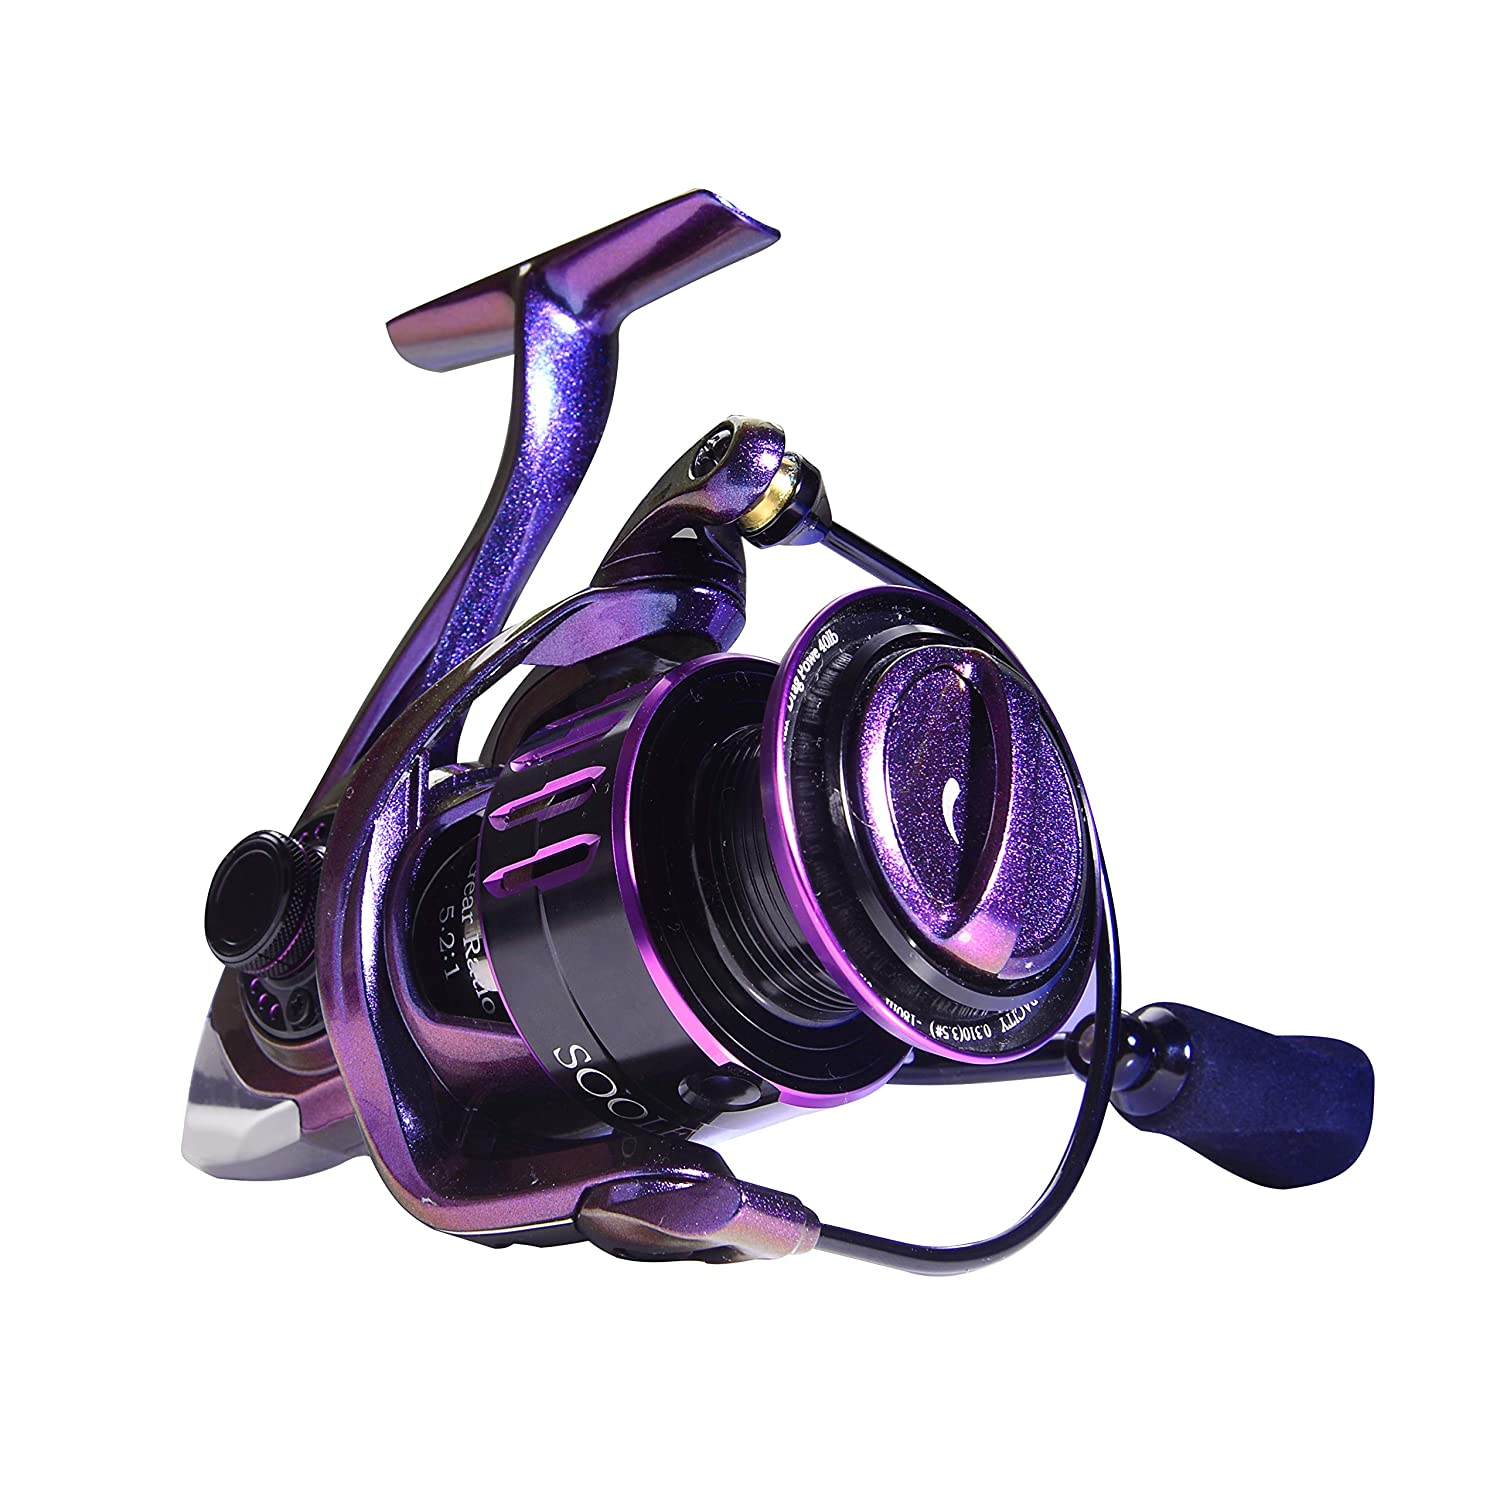 SOOLF Spinning Fishing Reel – 9 1 Stainless Steel Shielded BB for Freshwater or Saltwater, 5.2 1 Gear Ratio